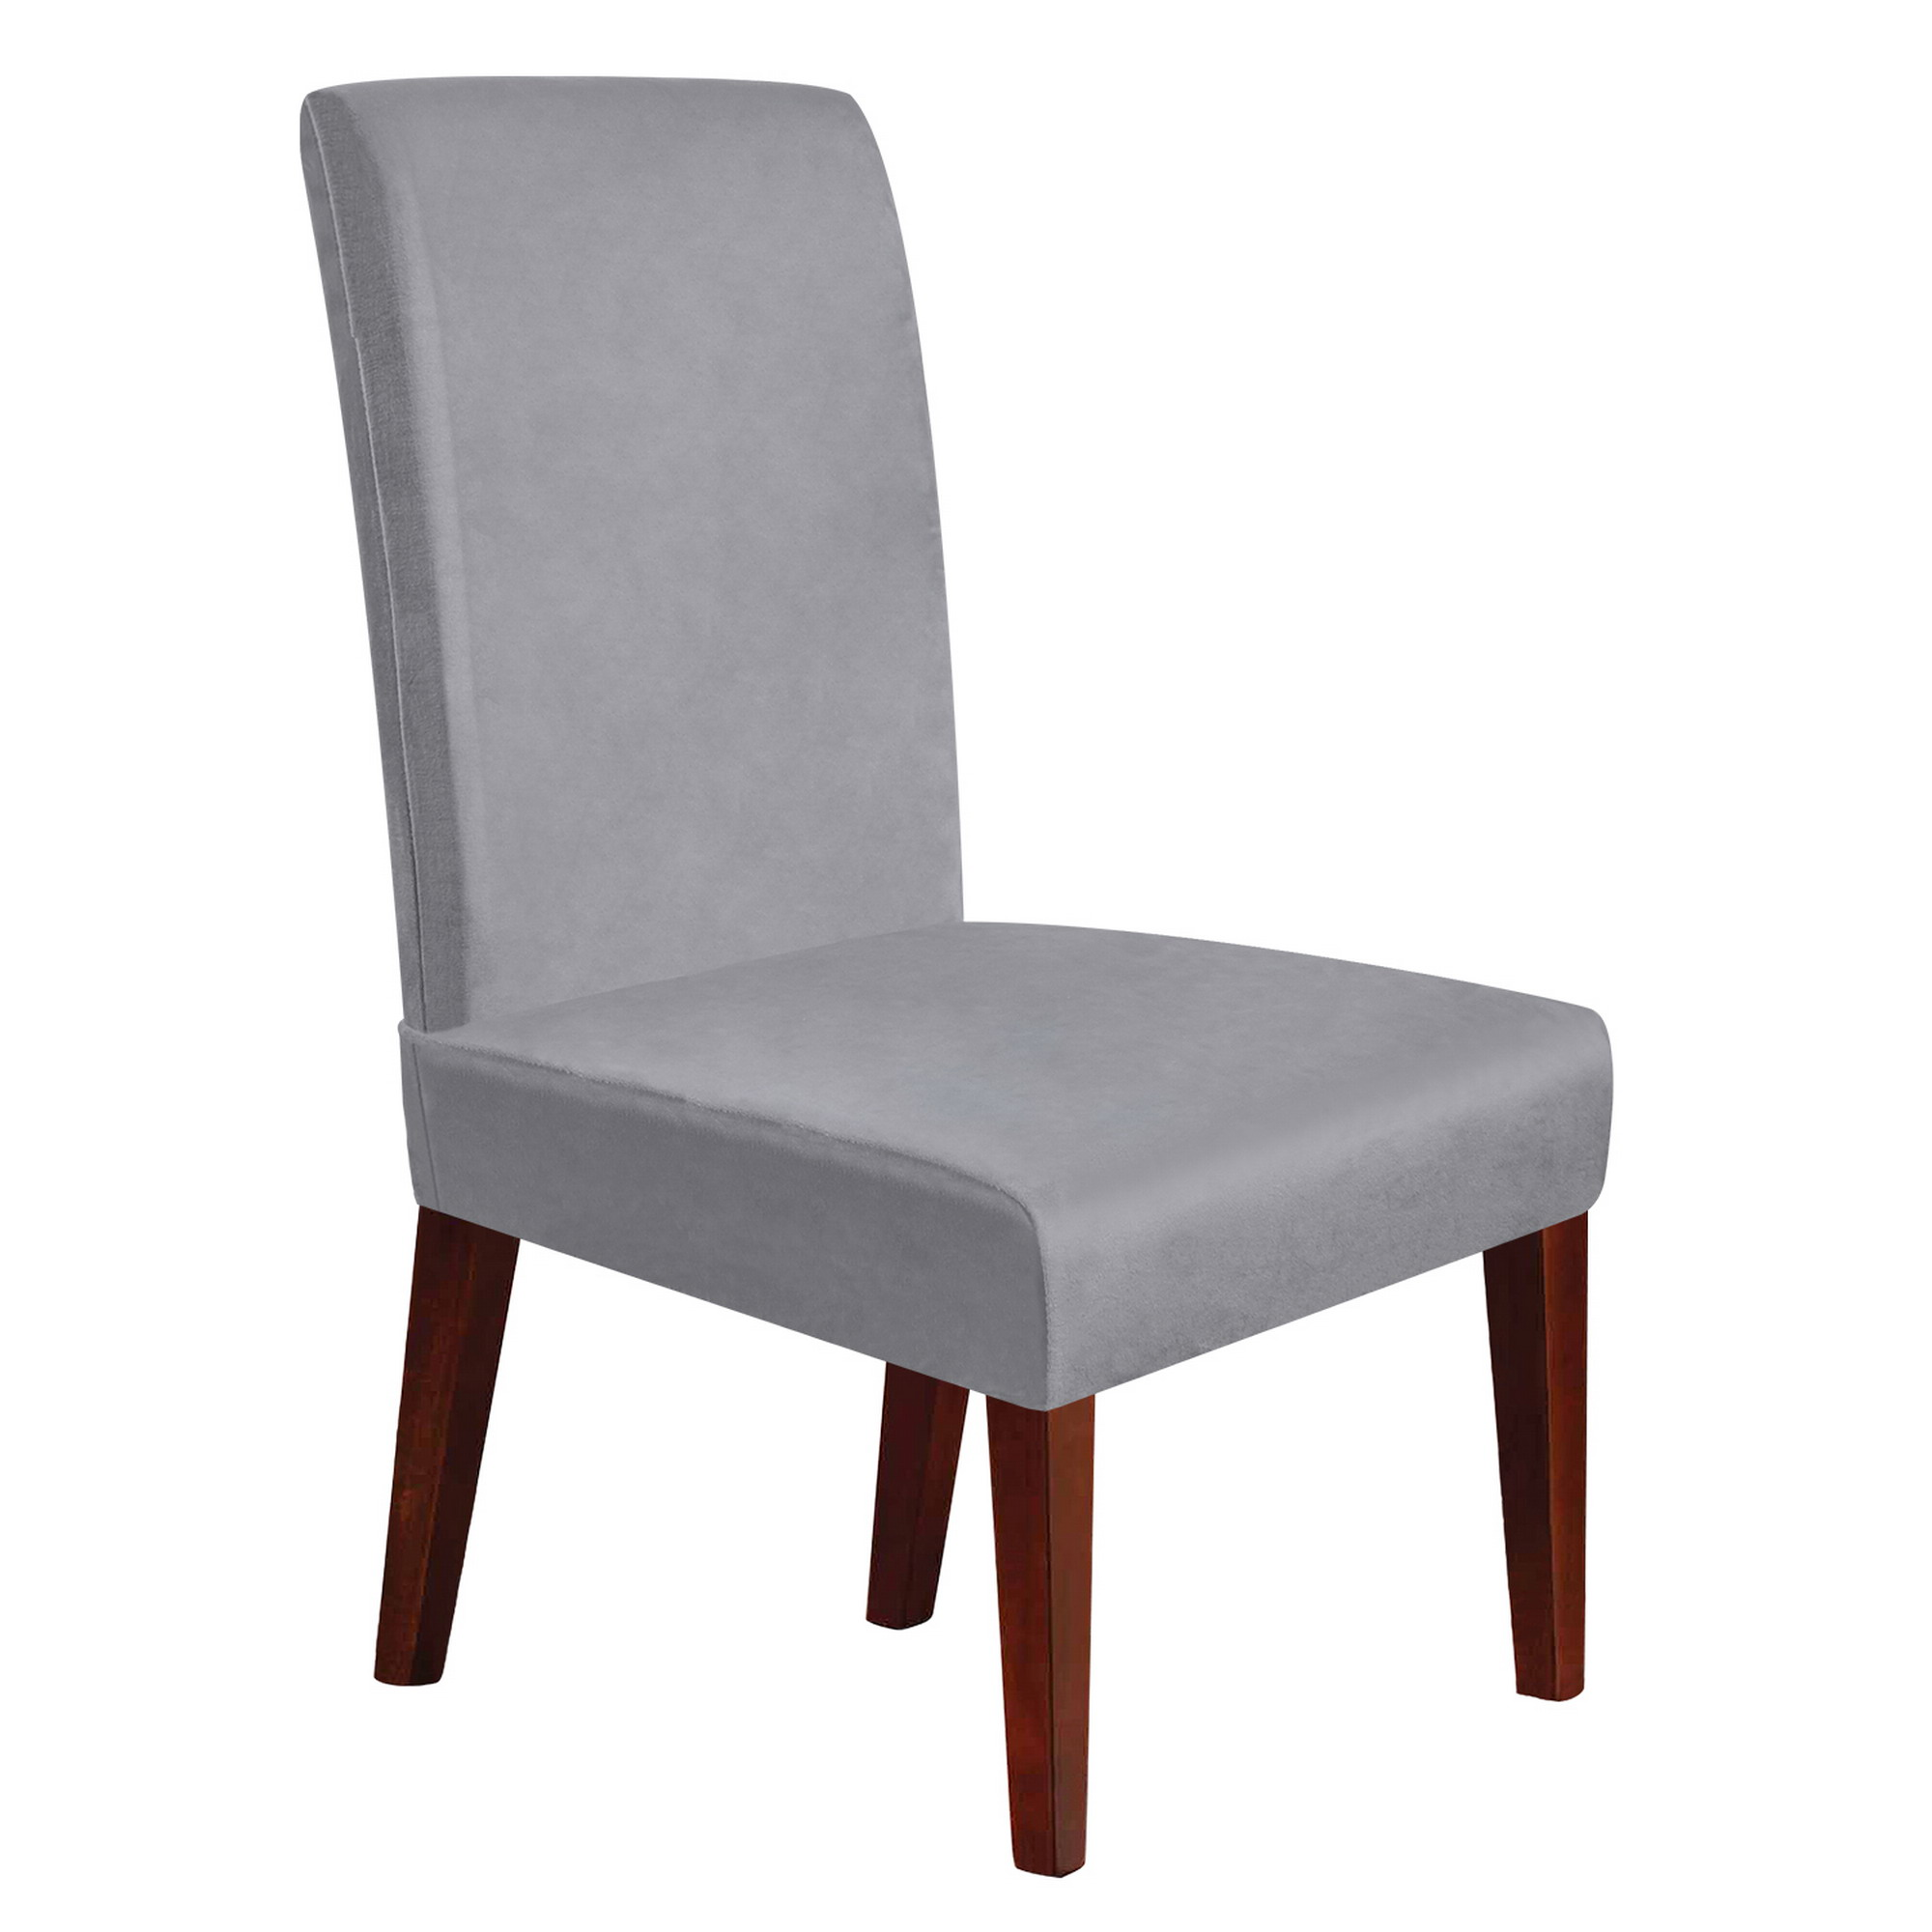 party chair covers walmart kitchen cushions with ruffles slipcovers for dining room soft spandex stretch removable washable banquet home hotel wedding seat